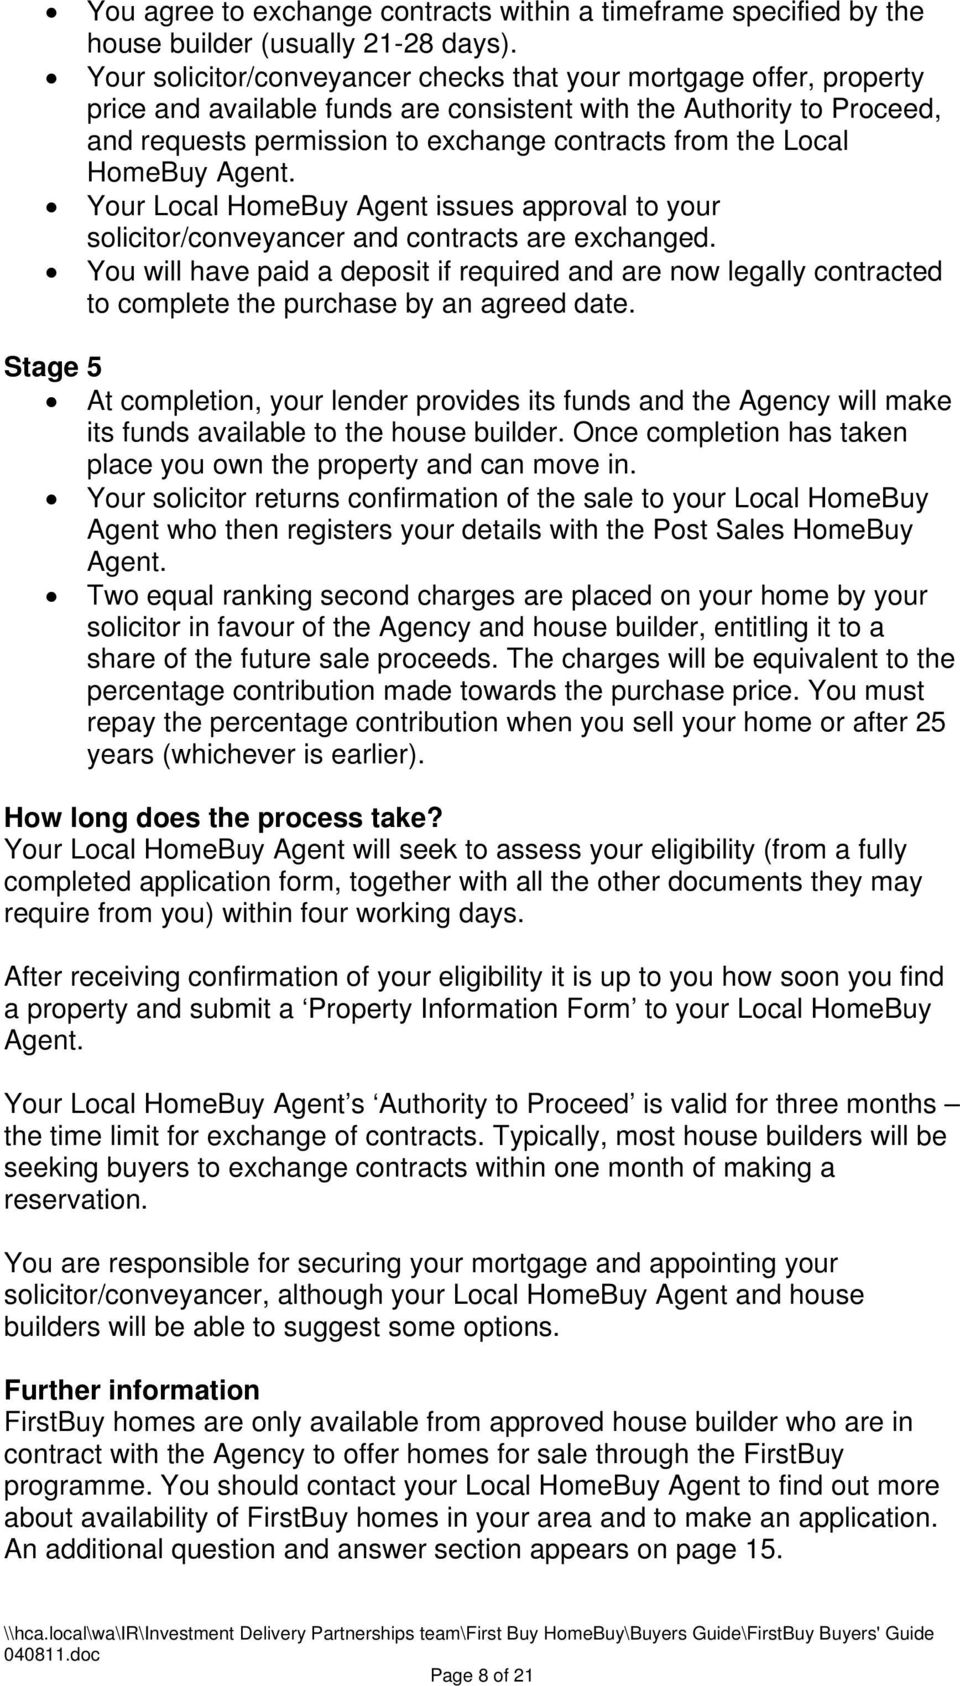 Local HomeBuy Agent. Your Local HomeBuy Agent issues approval to your solicitor/conveyancer and contracts are exchanged.